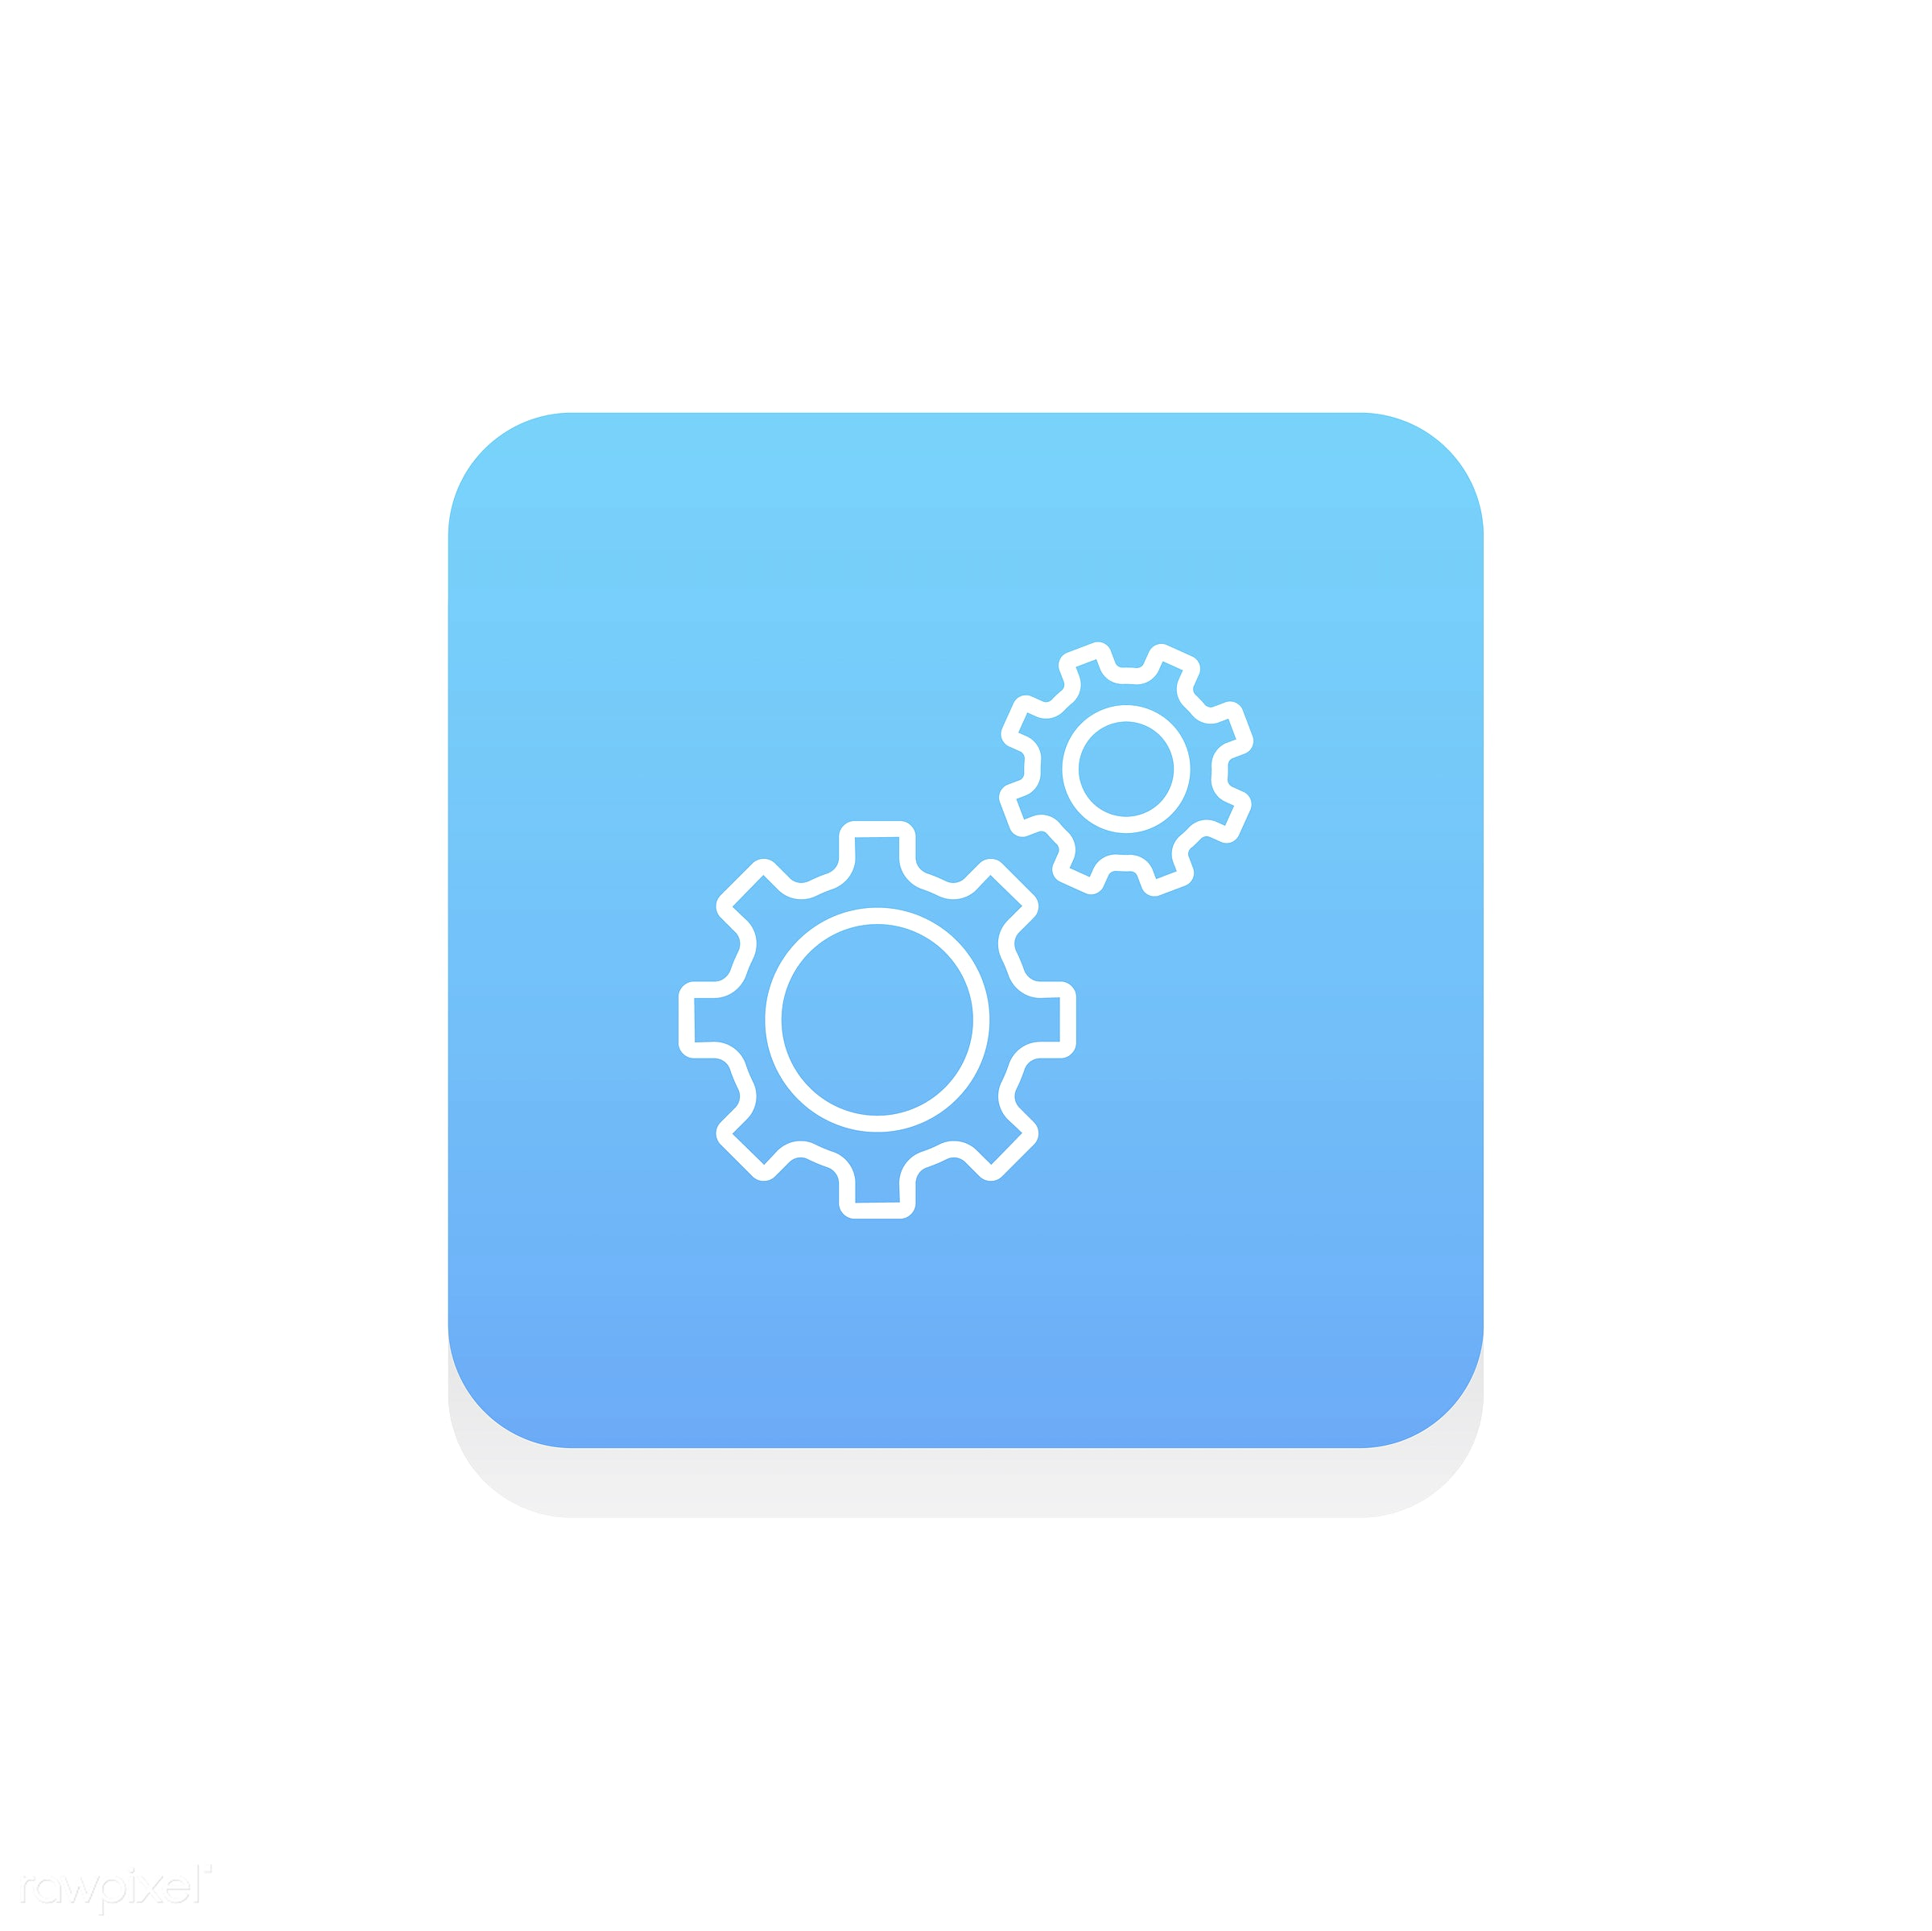 Vector of gear icon - gear, design, flat, graphic, icon, illustration, isolated, layout, style, symbol, vector, web, website...